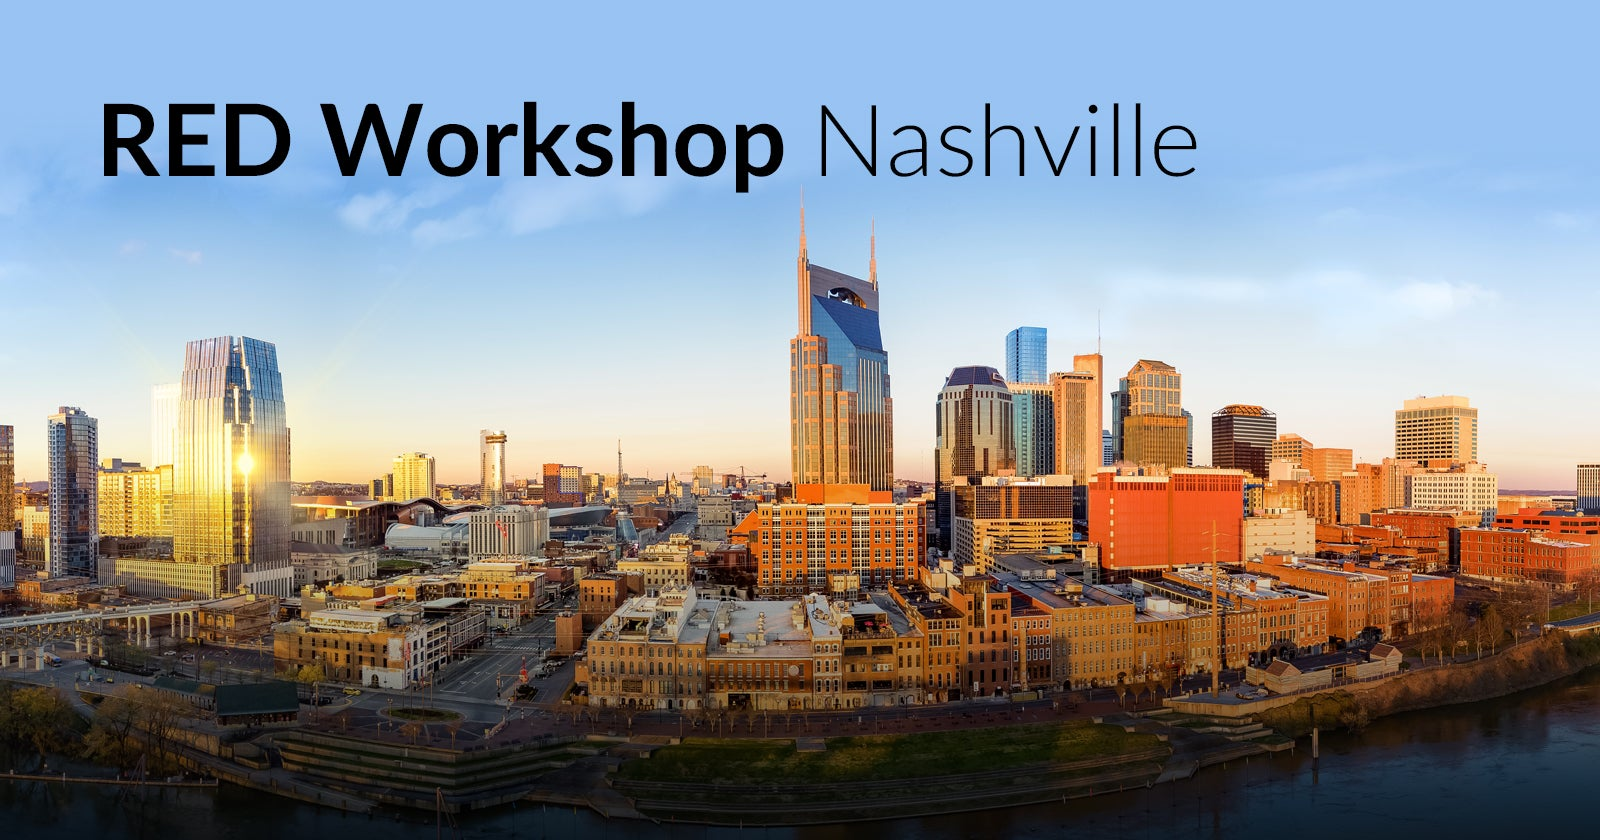 RED Workshop Nashville